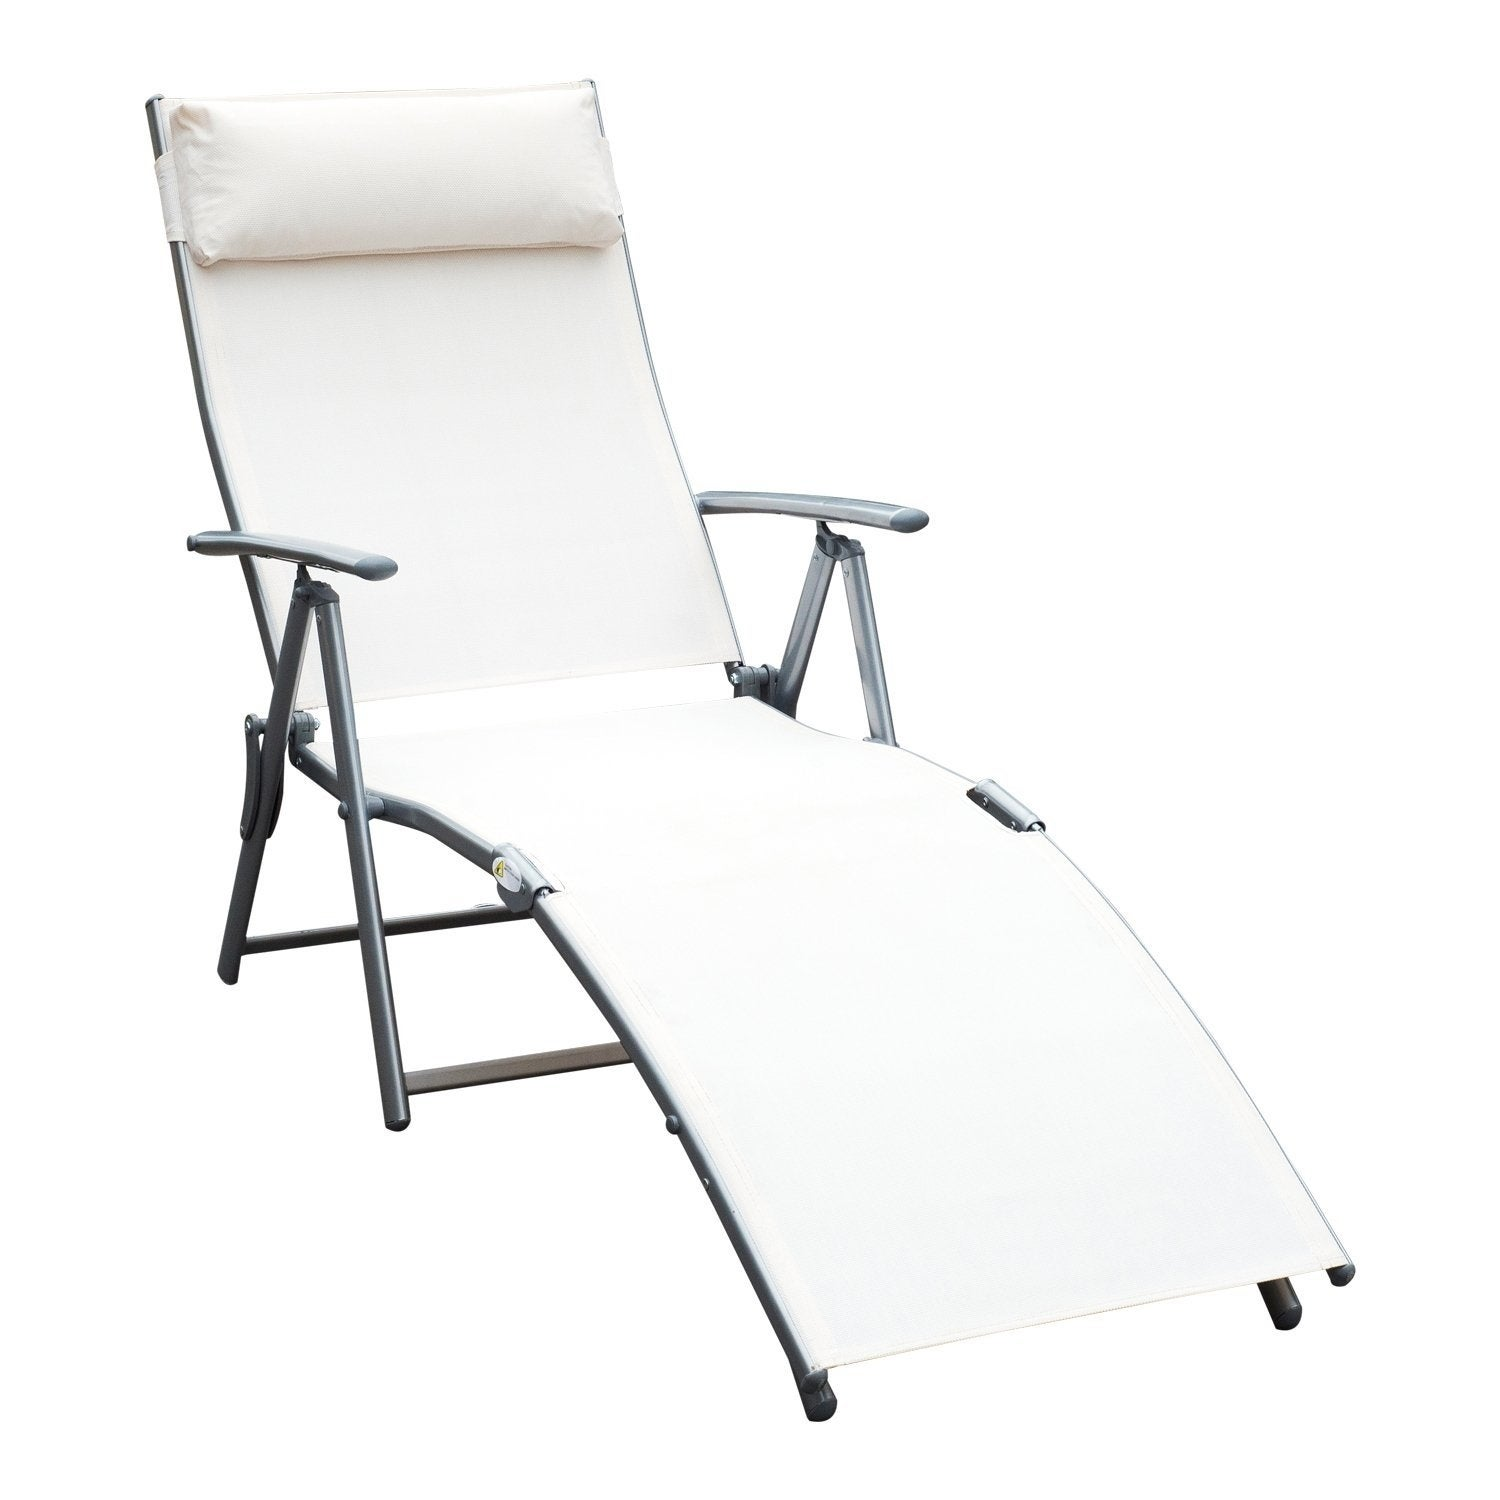 Shop Outsunny Steel Sling Fabric Outdoor Folding Chaise Lounge Chair  Recliner   Cream White   On Sale   Free Shipping Today   Overstock.com    22258498